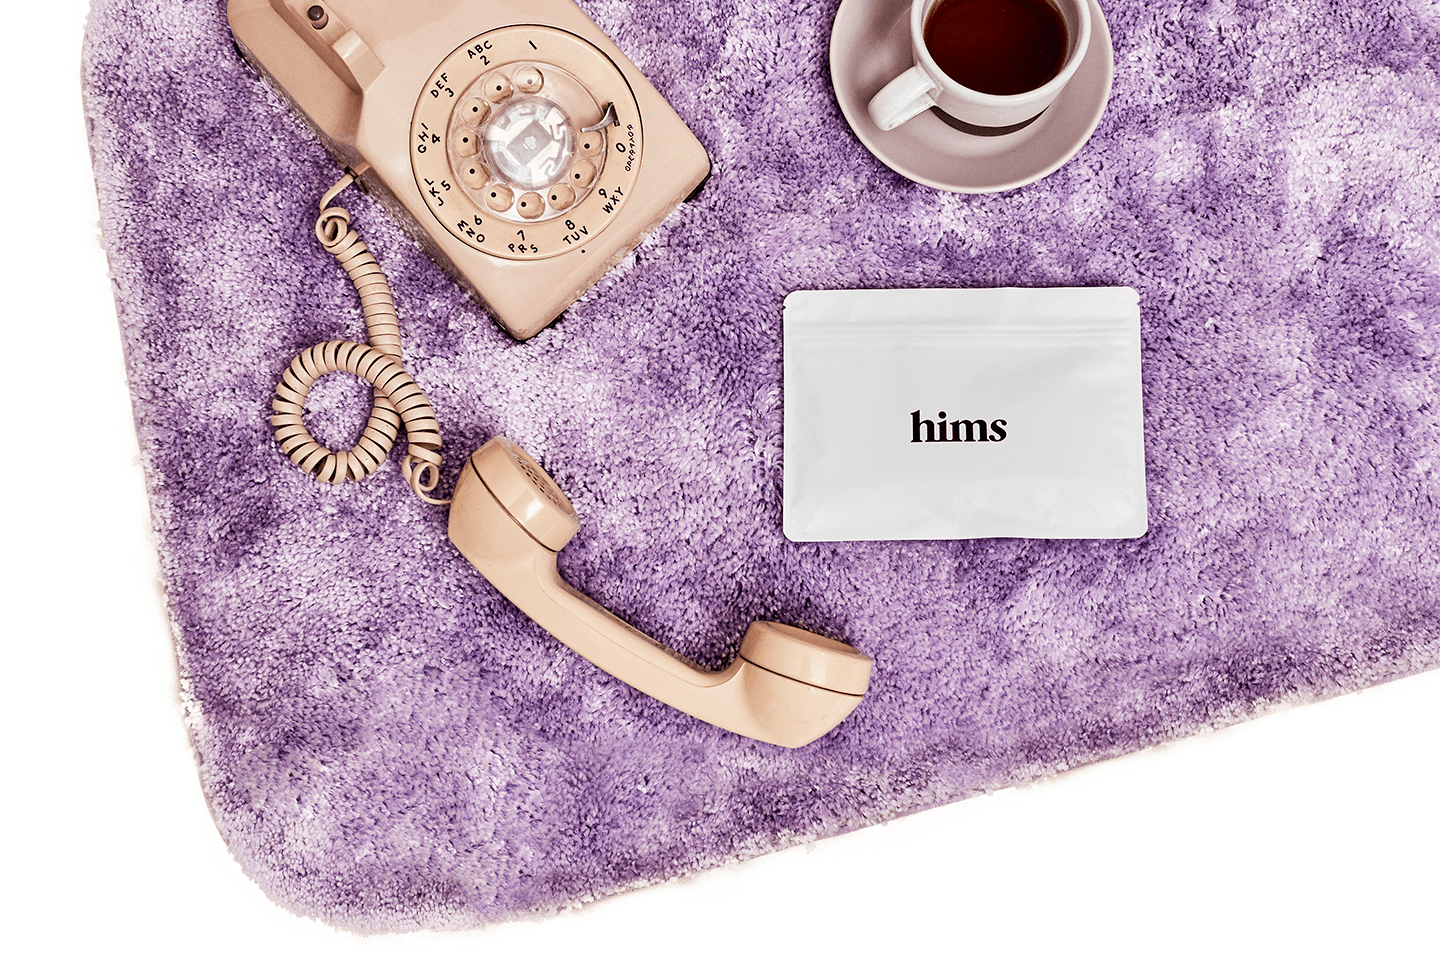 phone on purple bath mat